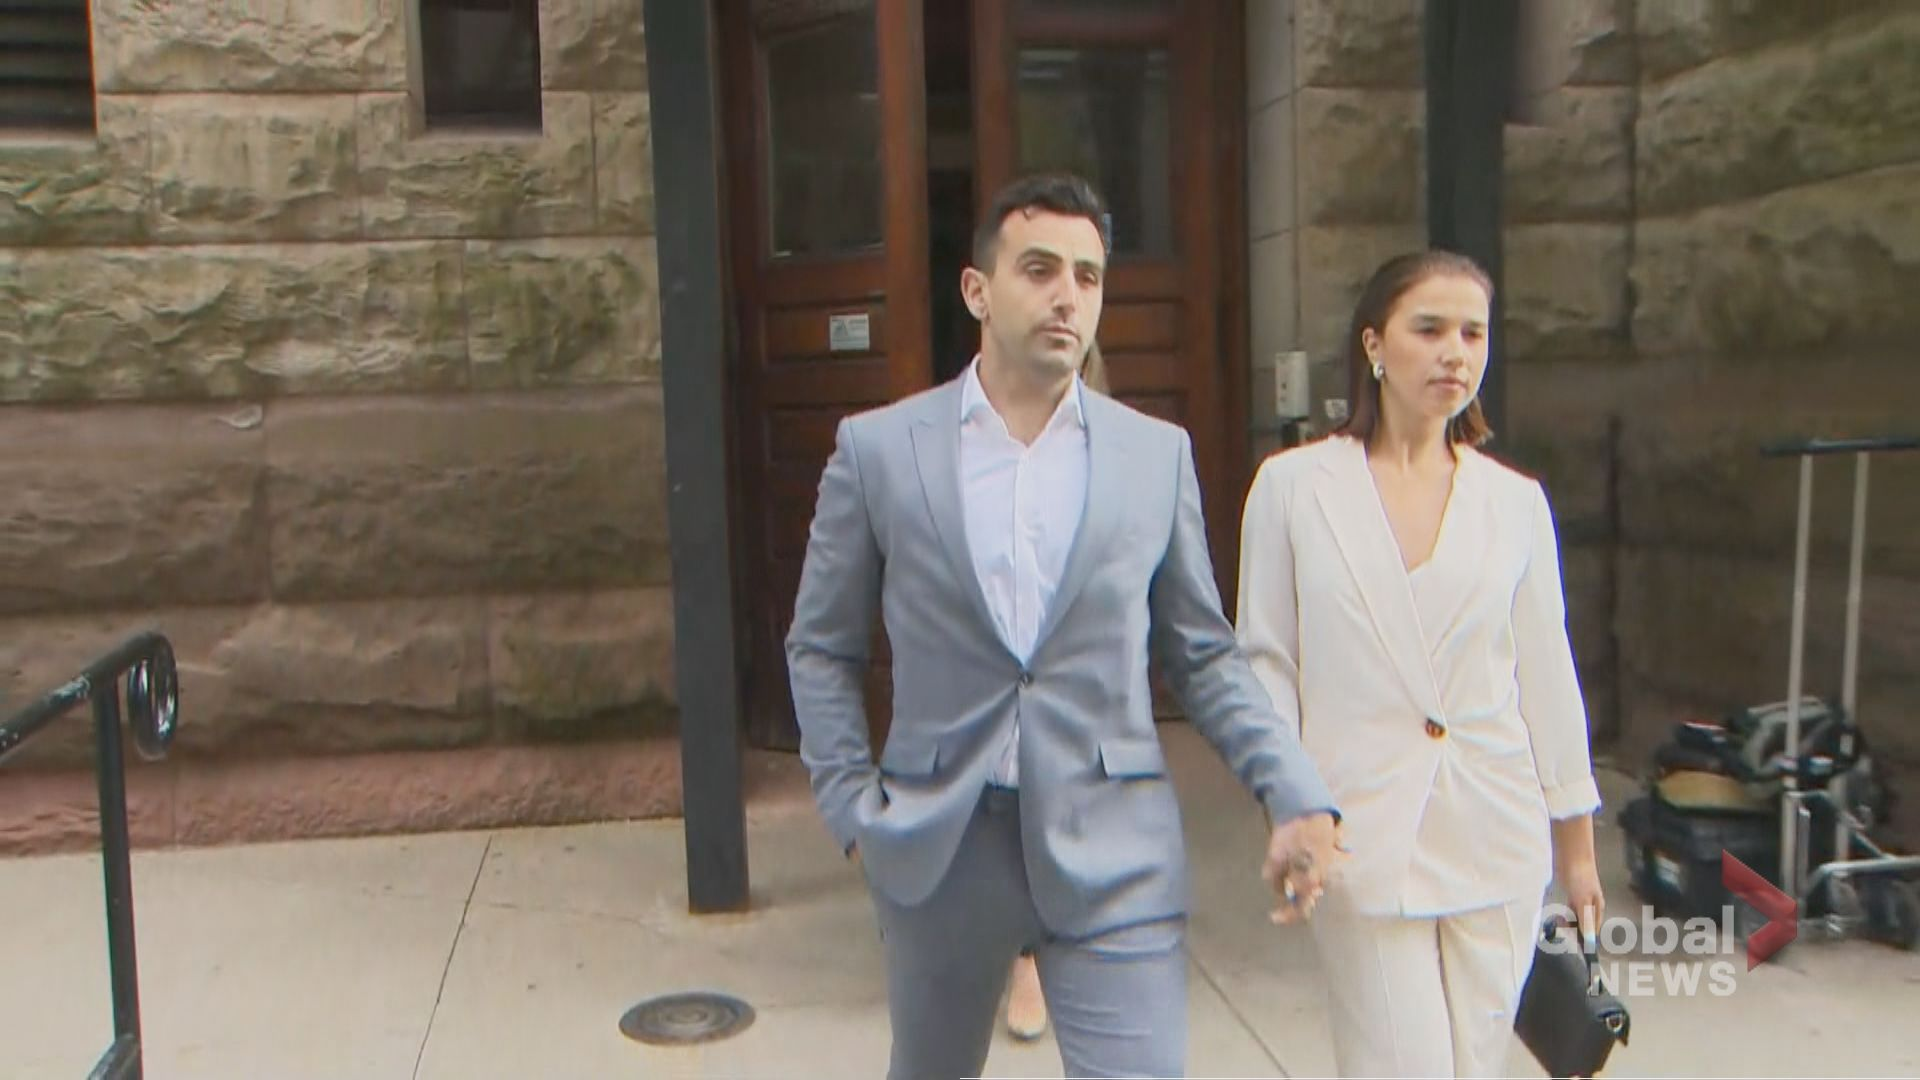 Preliminary hearing begins in Hedley frontman Jacob Hoggard's sex assault case